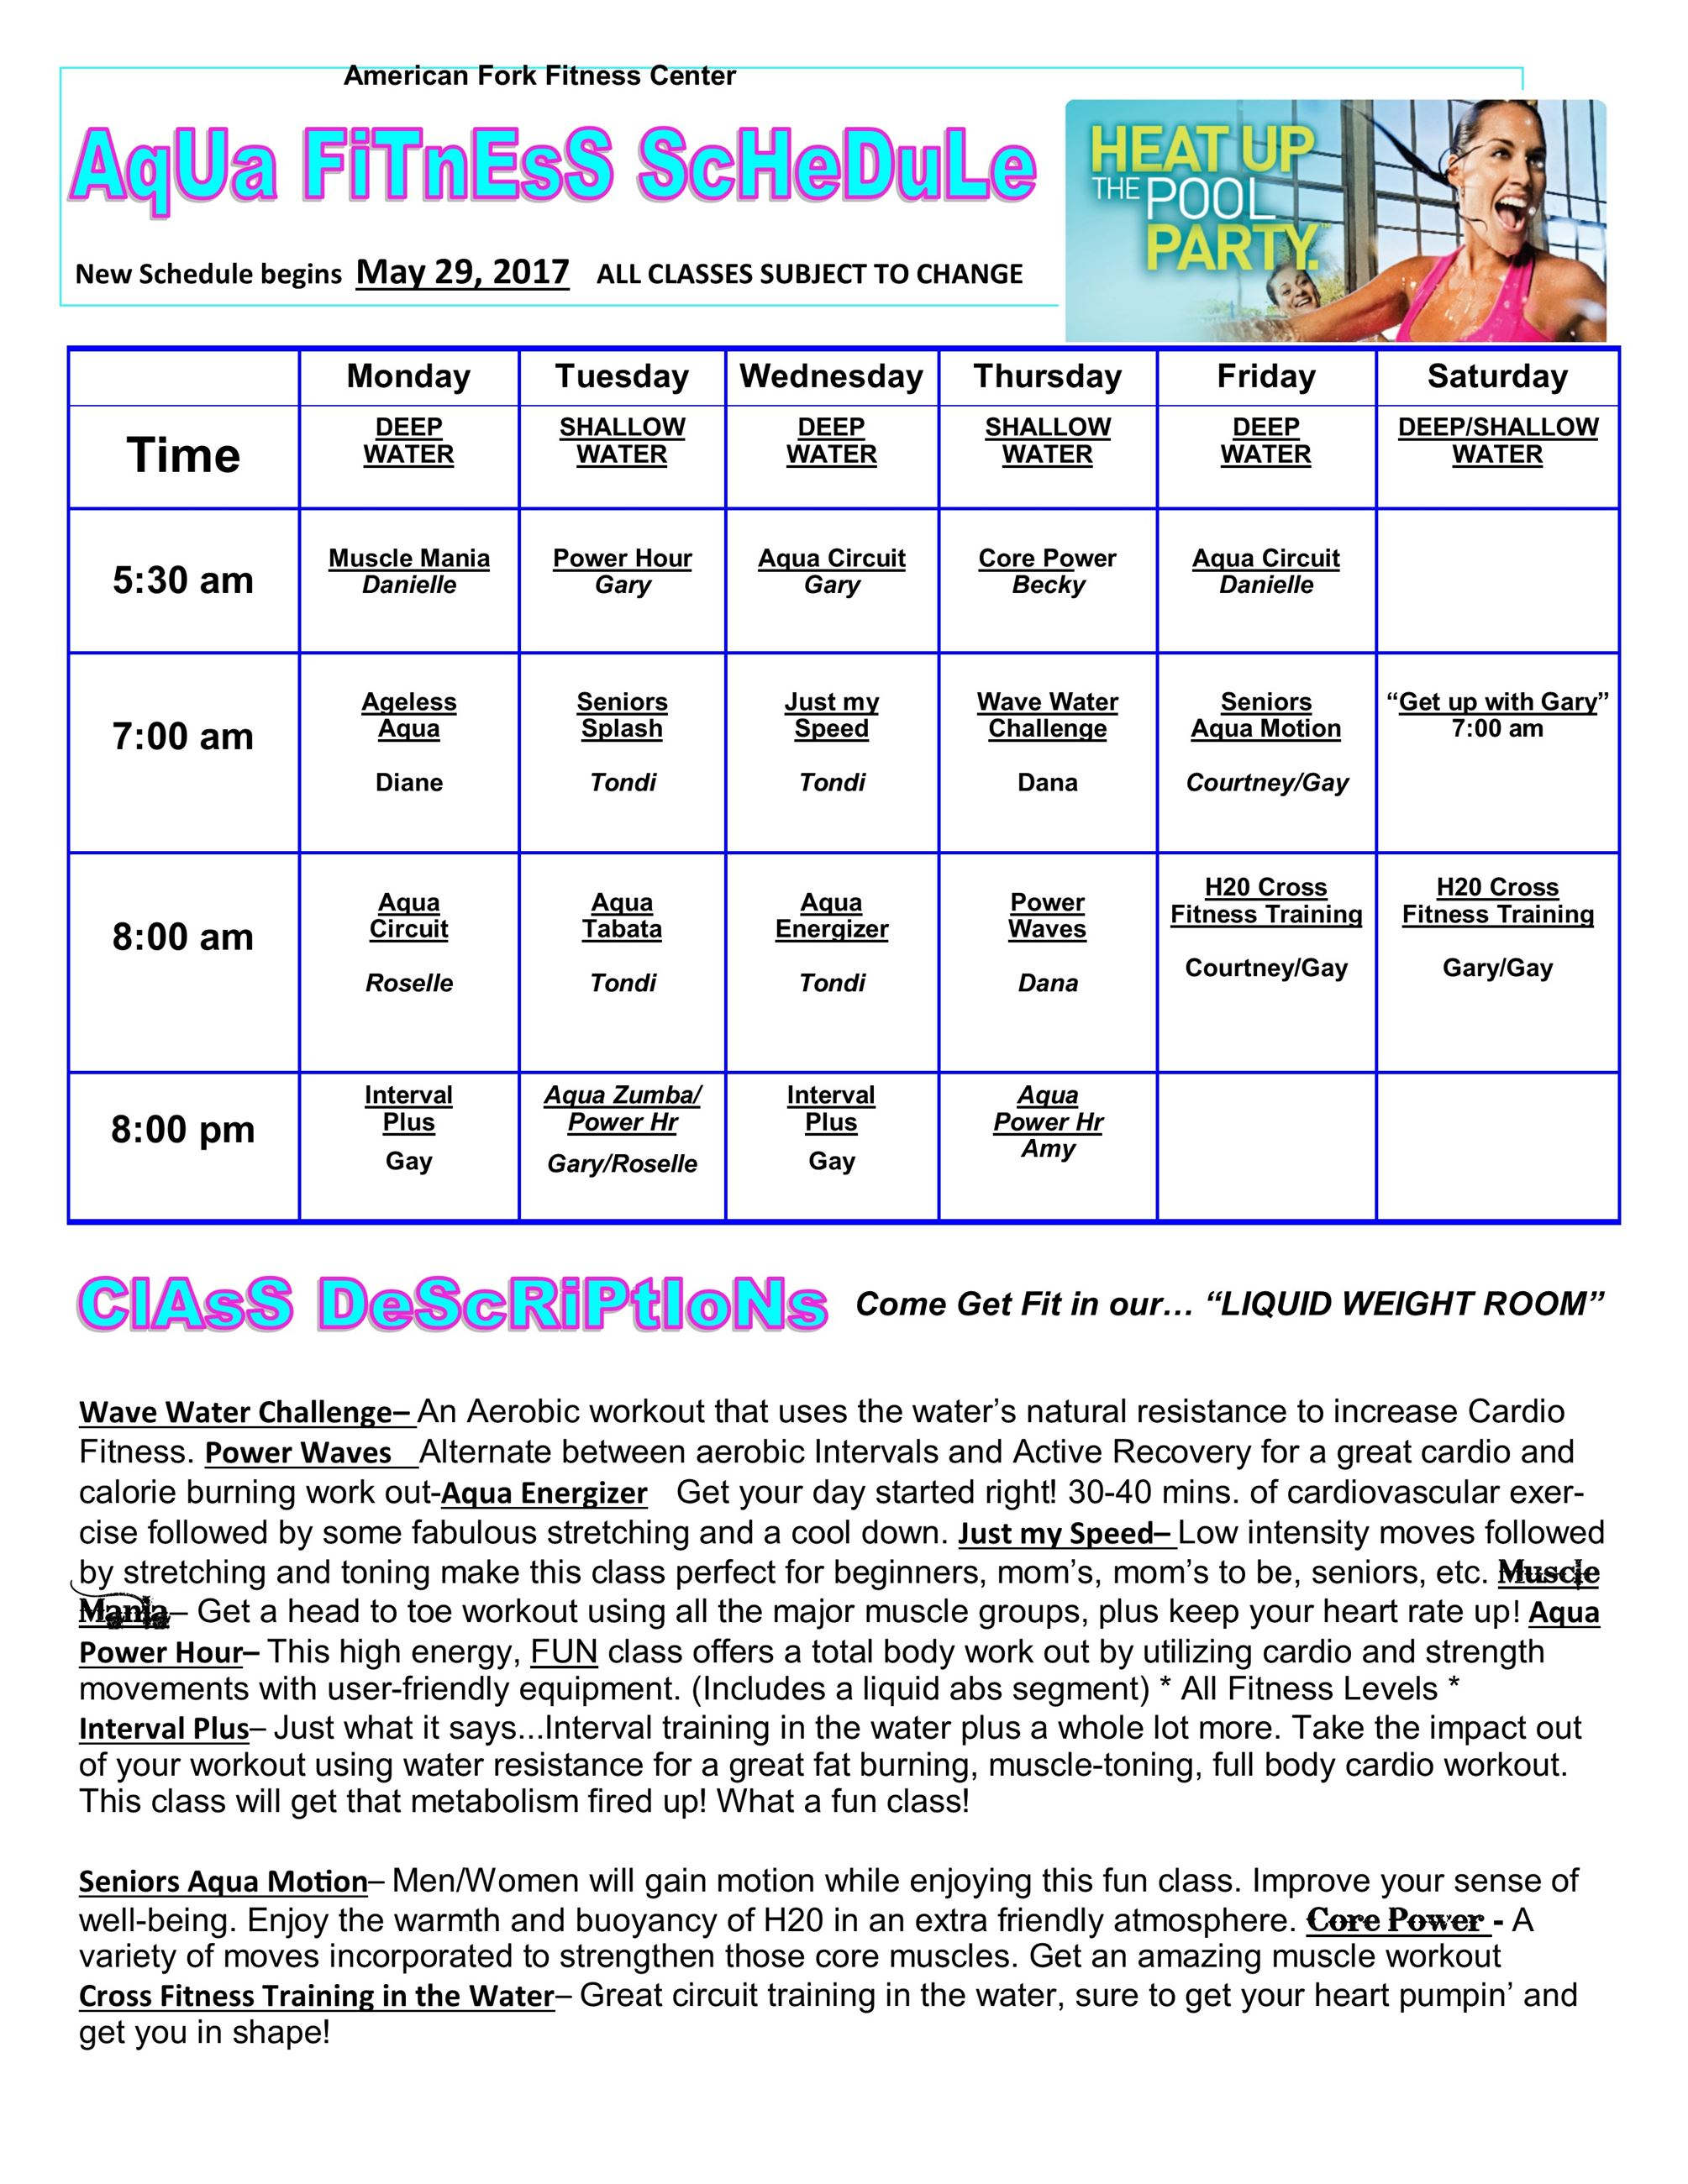 sUMMER gROUP fITNESS sCHEDULE 2017